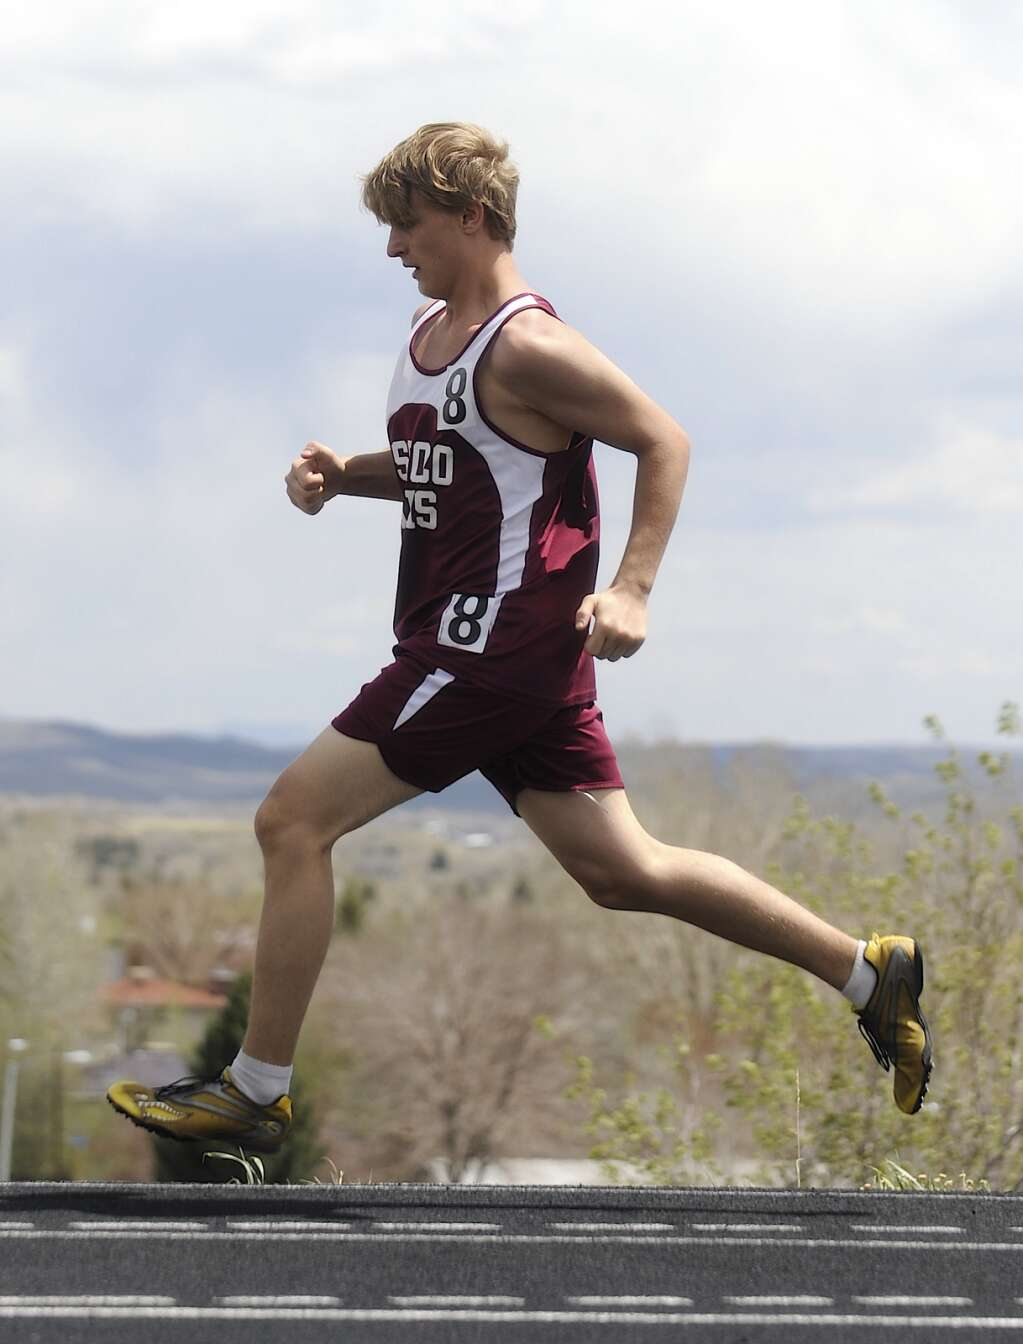 A Soroco athlete flies down the track at the Clint Wells Invitational in Craig on Friday. (Photo by Shelby Reardon)